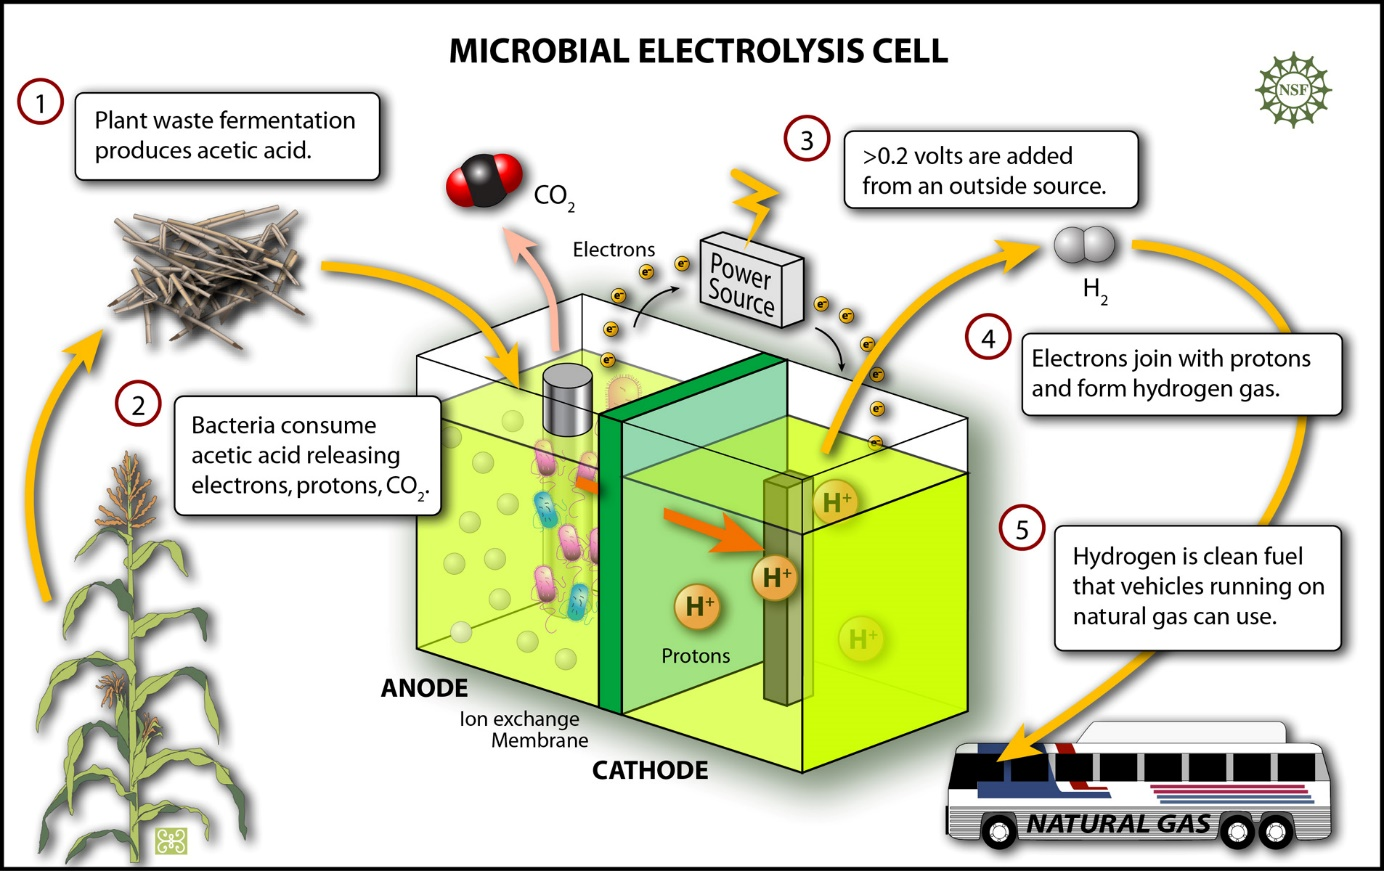 Electrodes Enhance H2 Production And Sludge Decomposition In Microbial Electrolysis